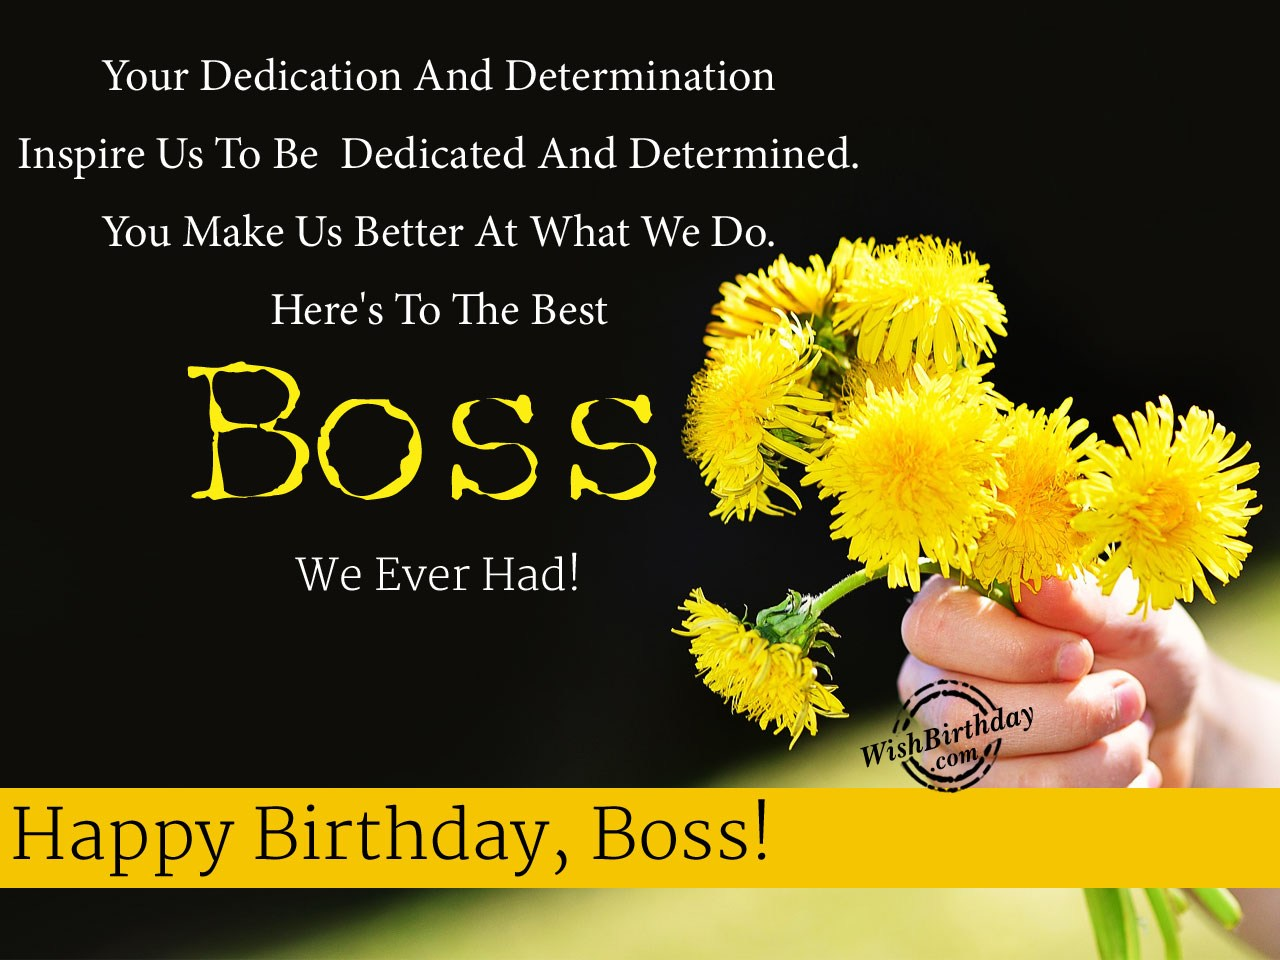 Birthday Greetings To Boss Birthday Wishes For Boss - Page 2